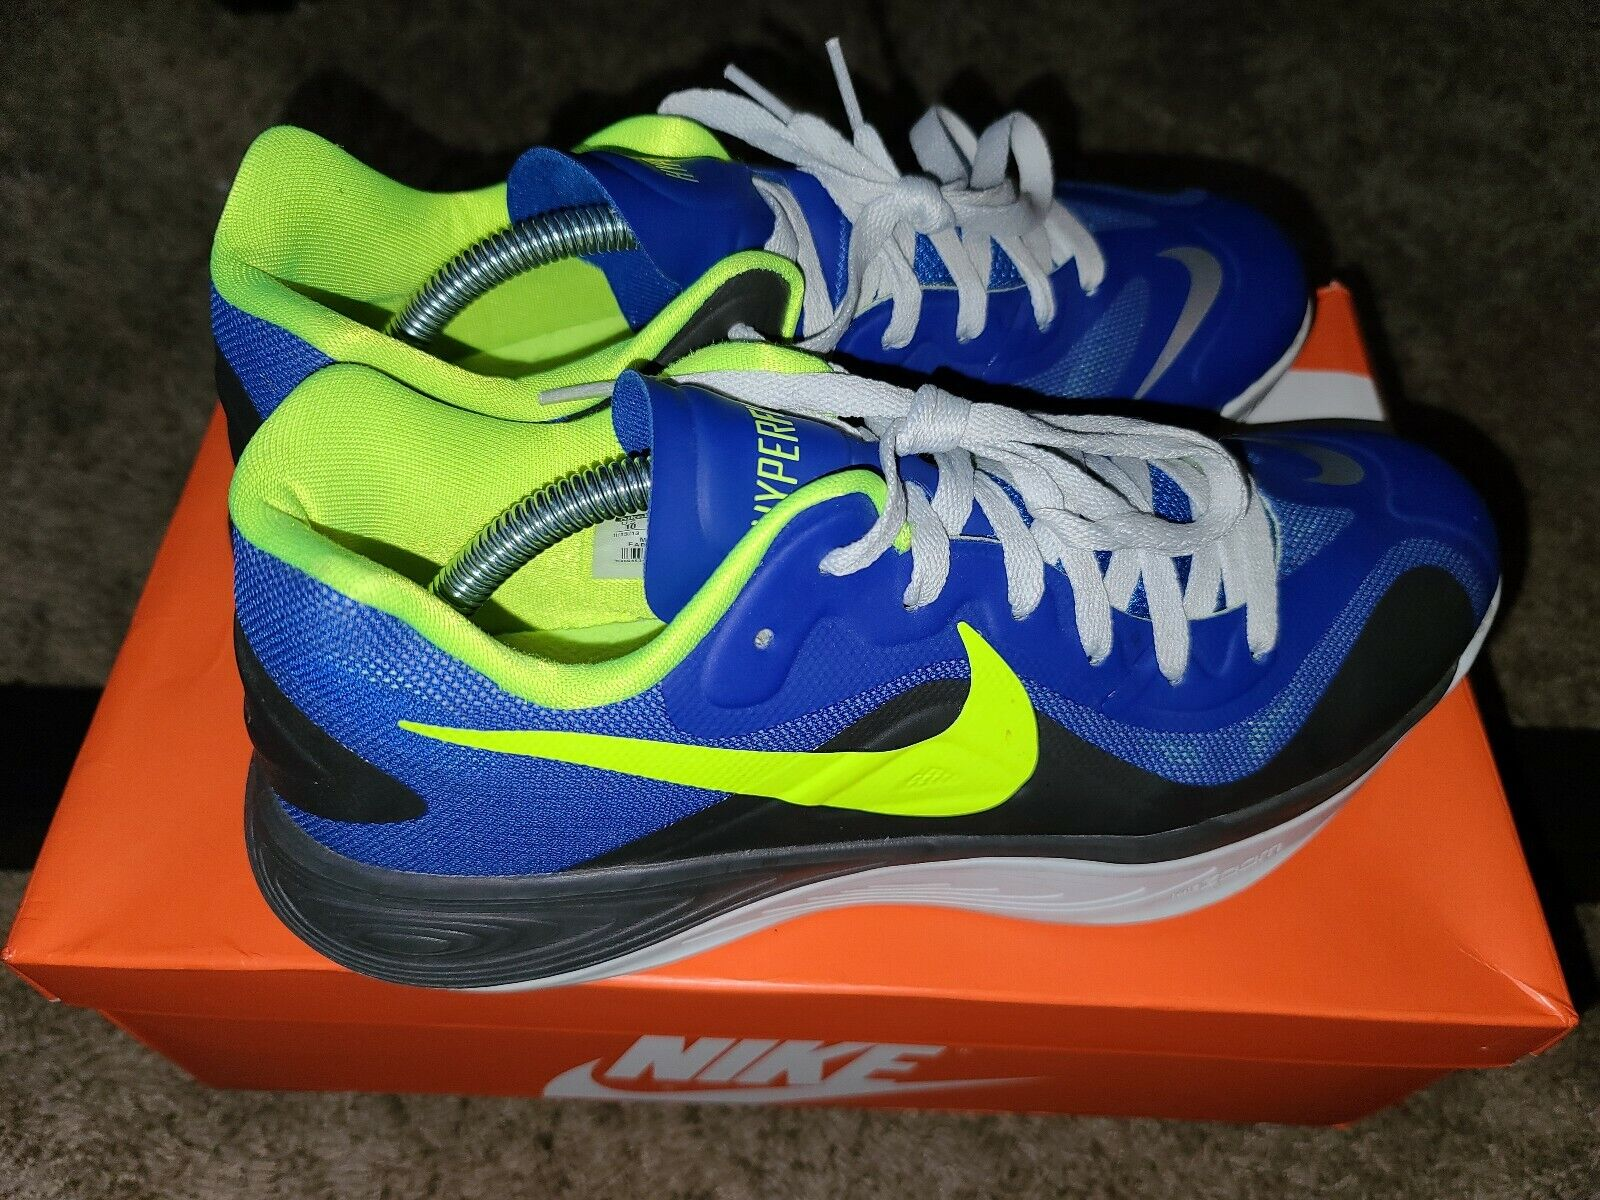 Mens Nike Hyperfuse Low Shoes Size 10